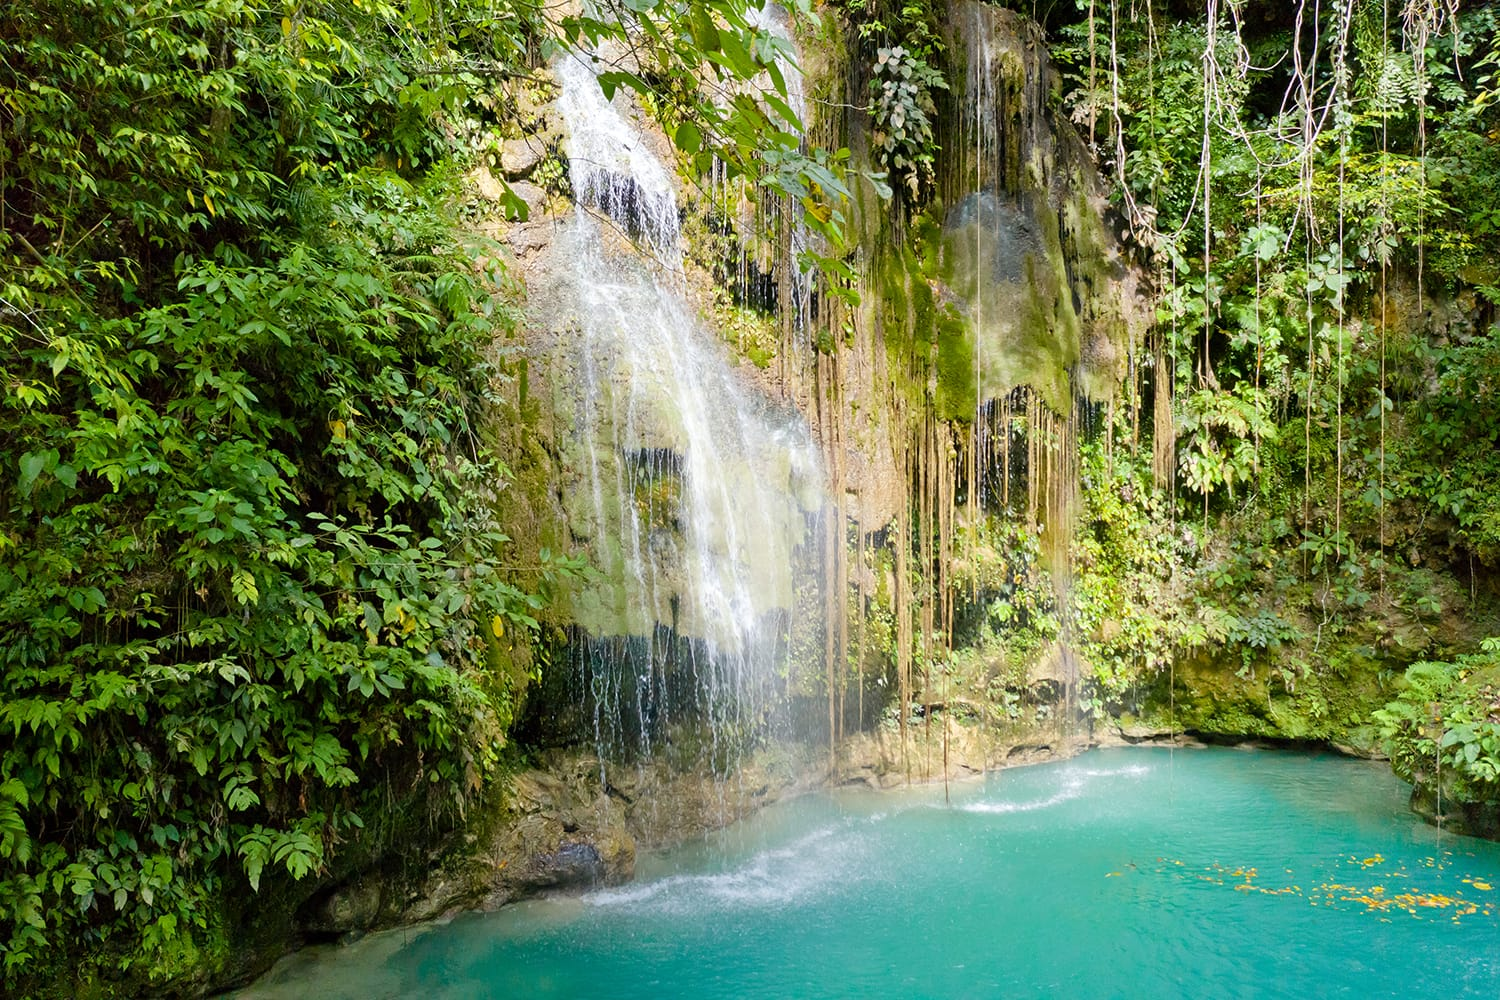 Cambais waterfalls in a mountain gorge in the tropical jungle, Philippines, Cebu